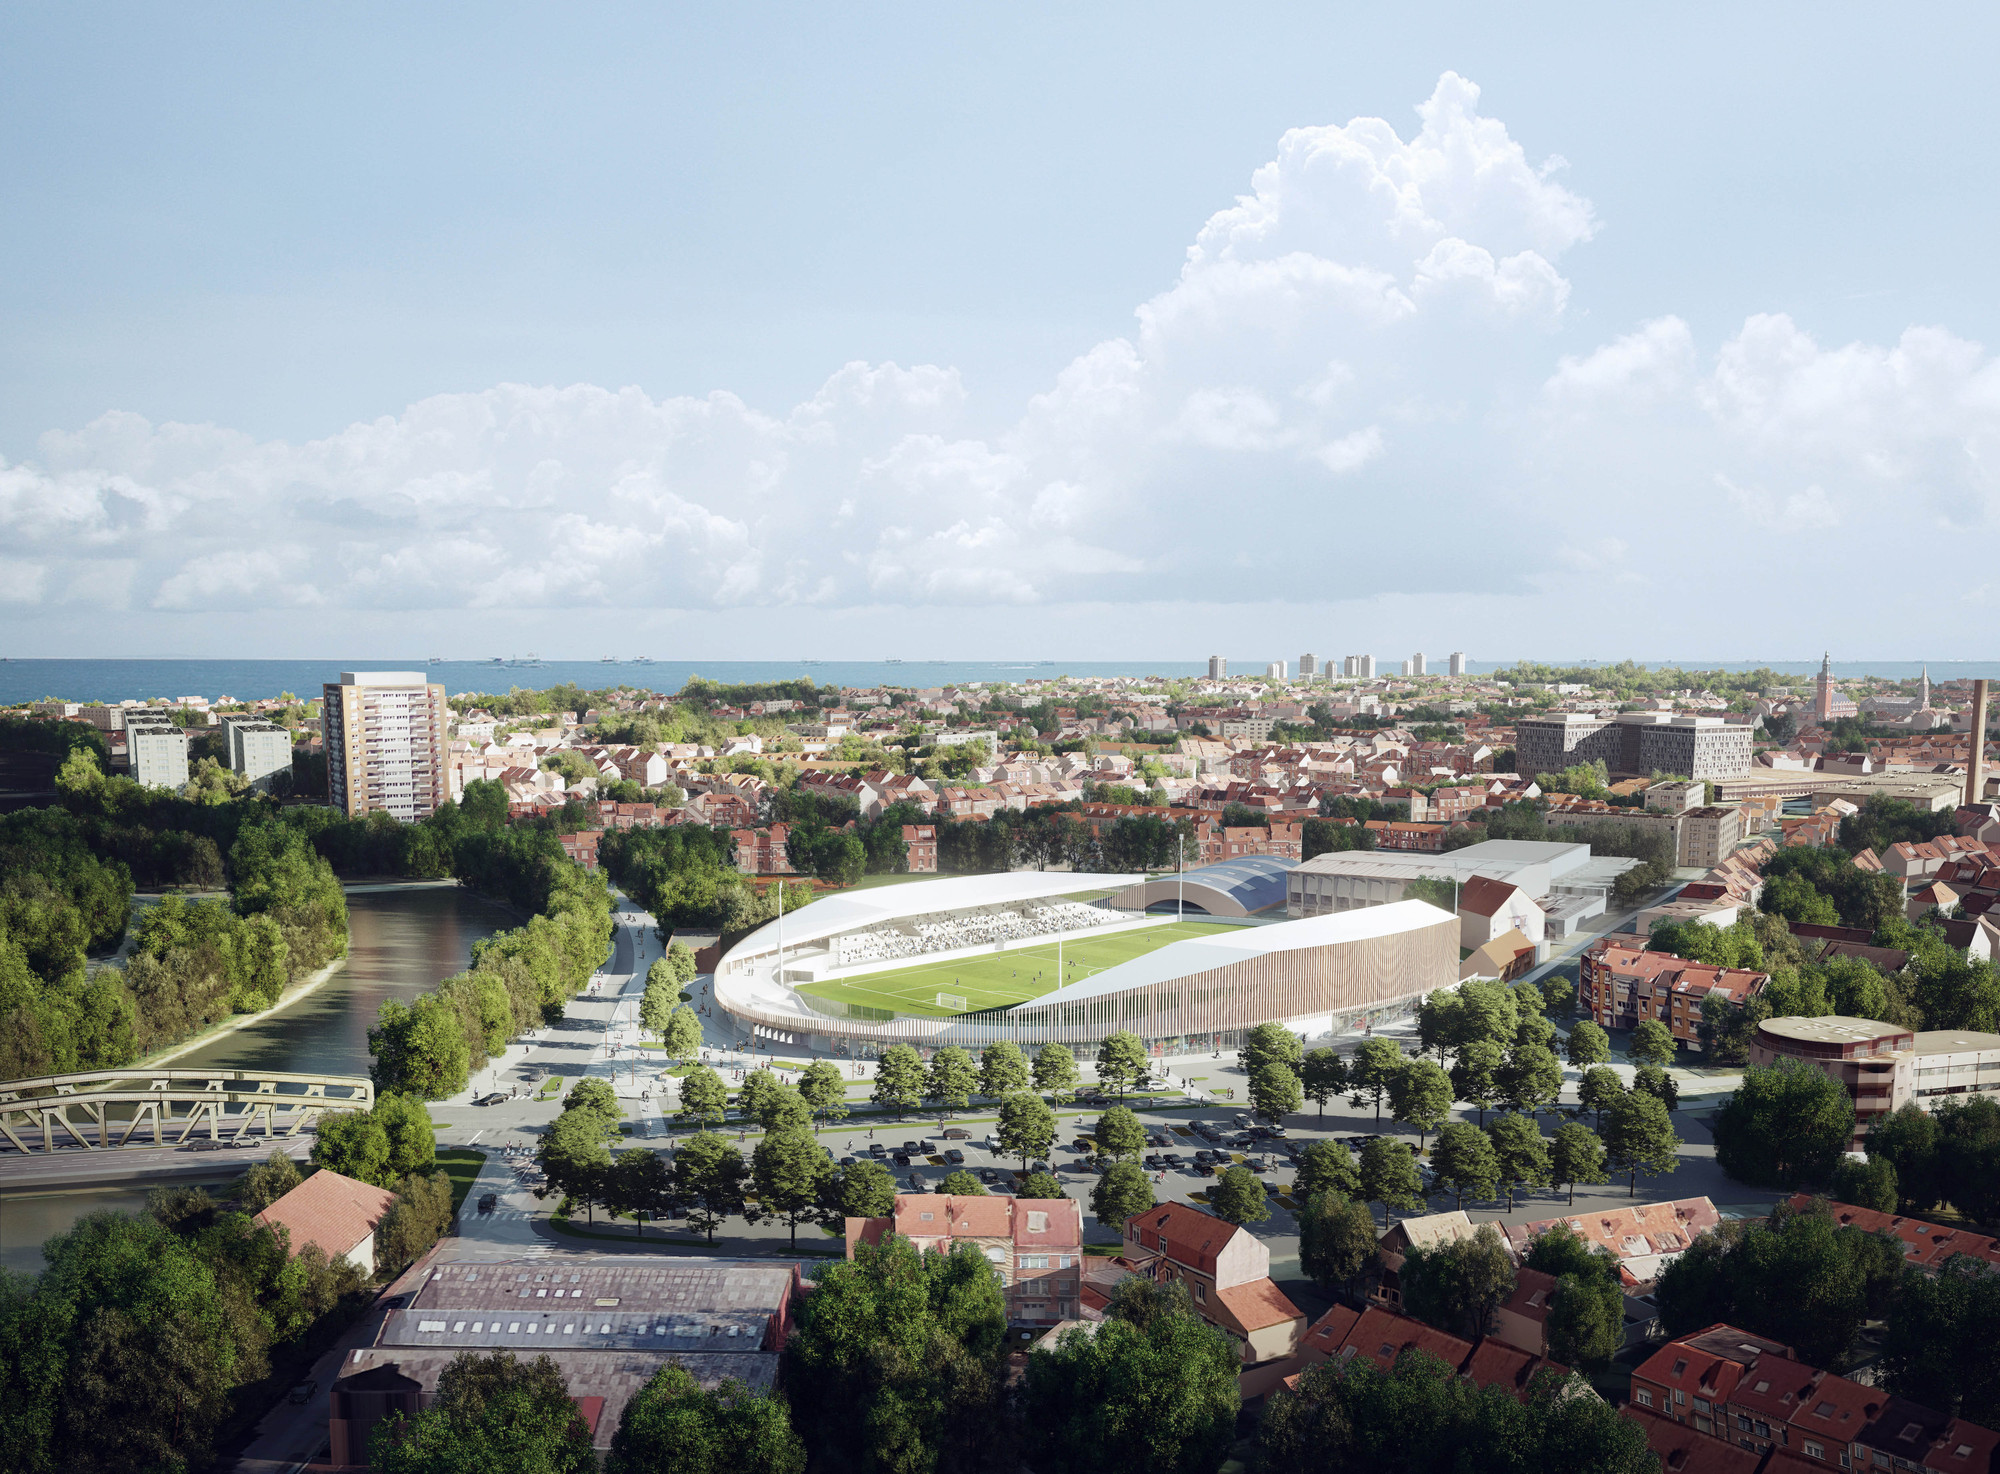 Design France Competition Winning Stadium Design Promotes Inclusivity In